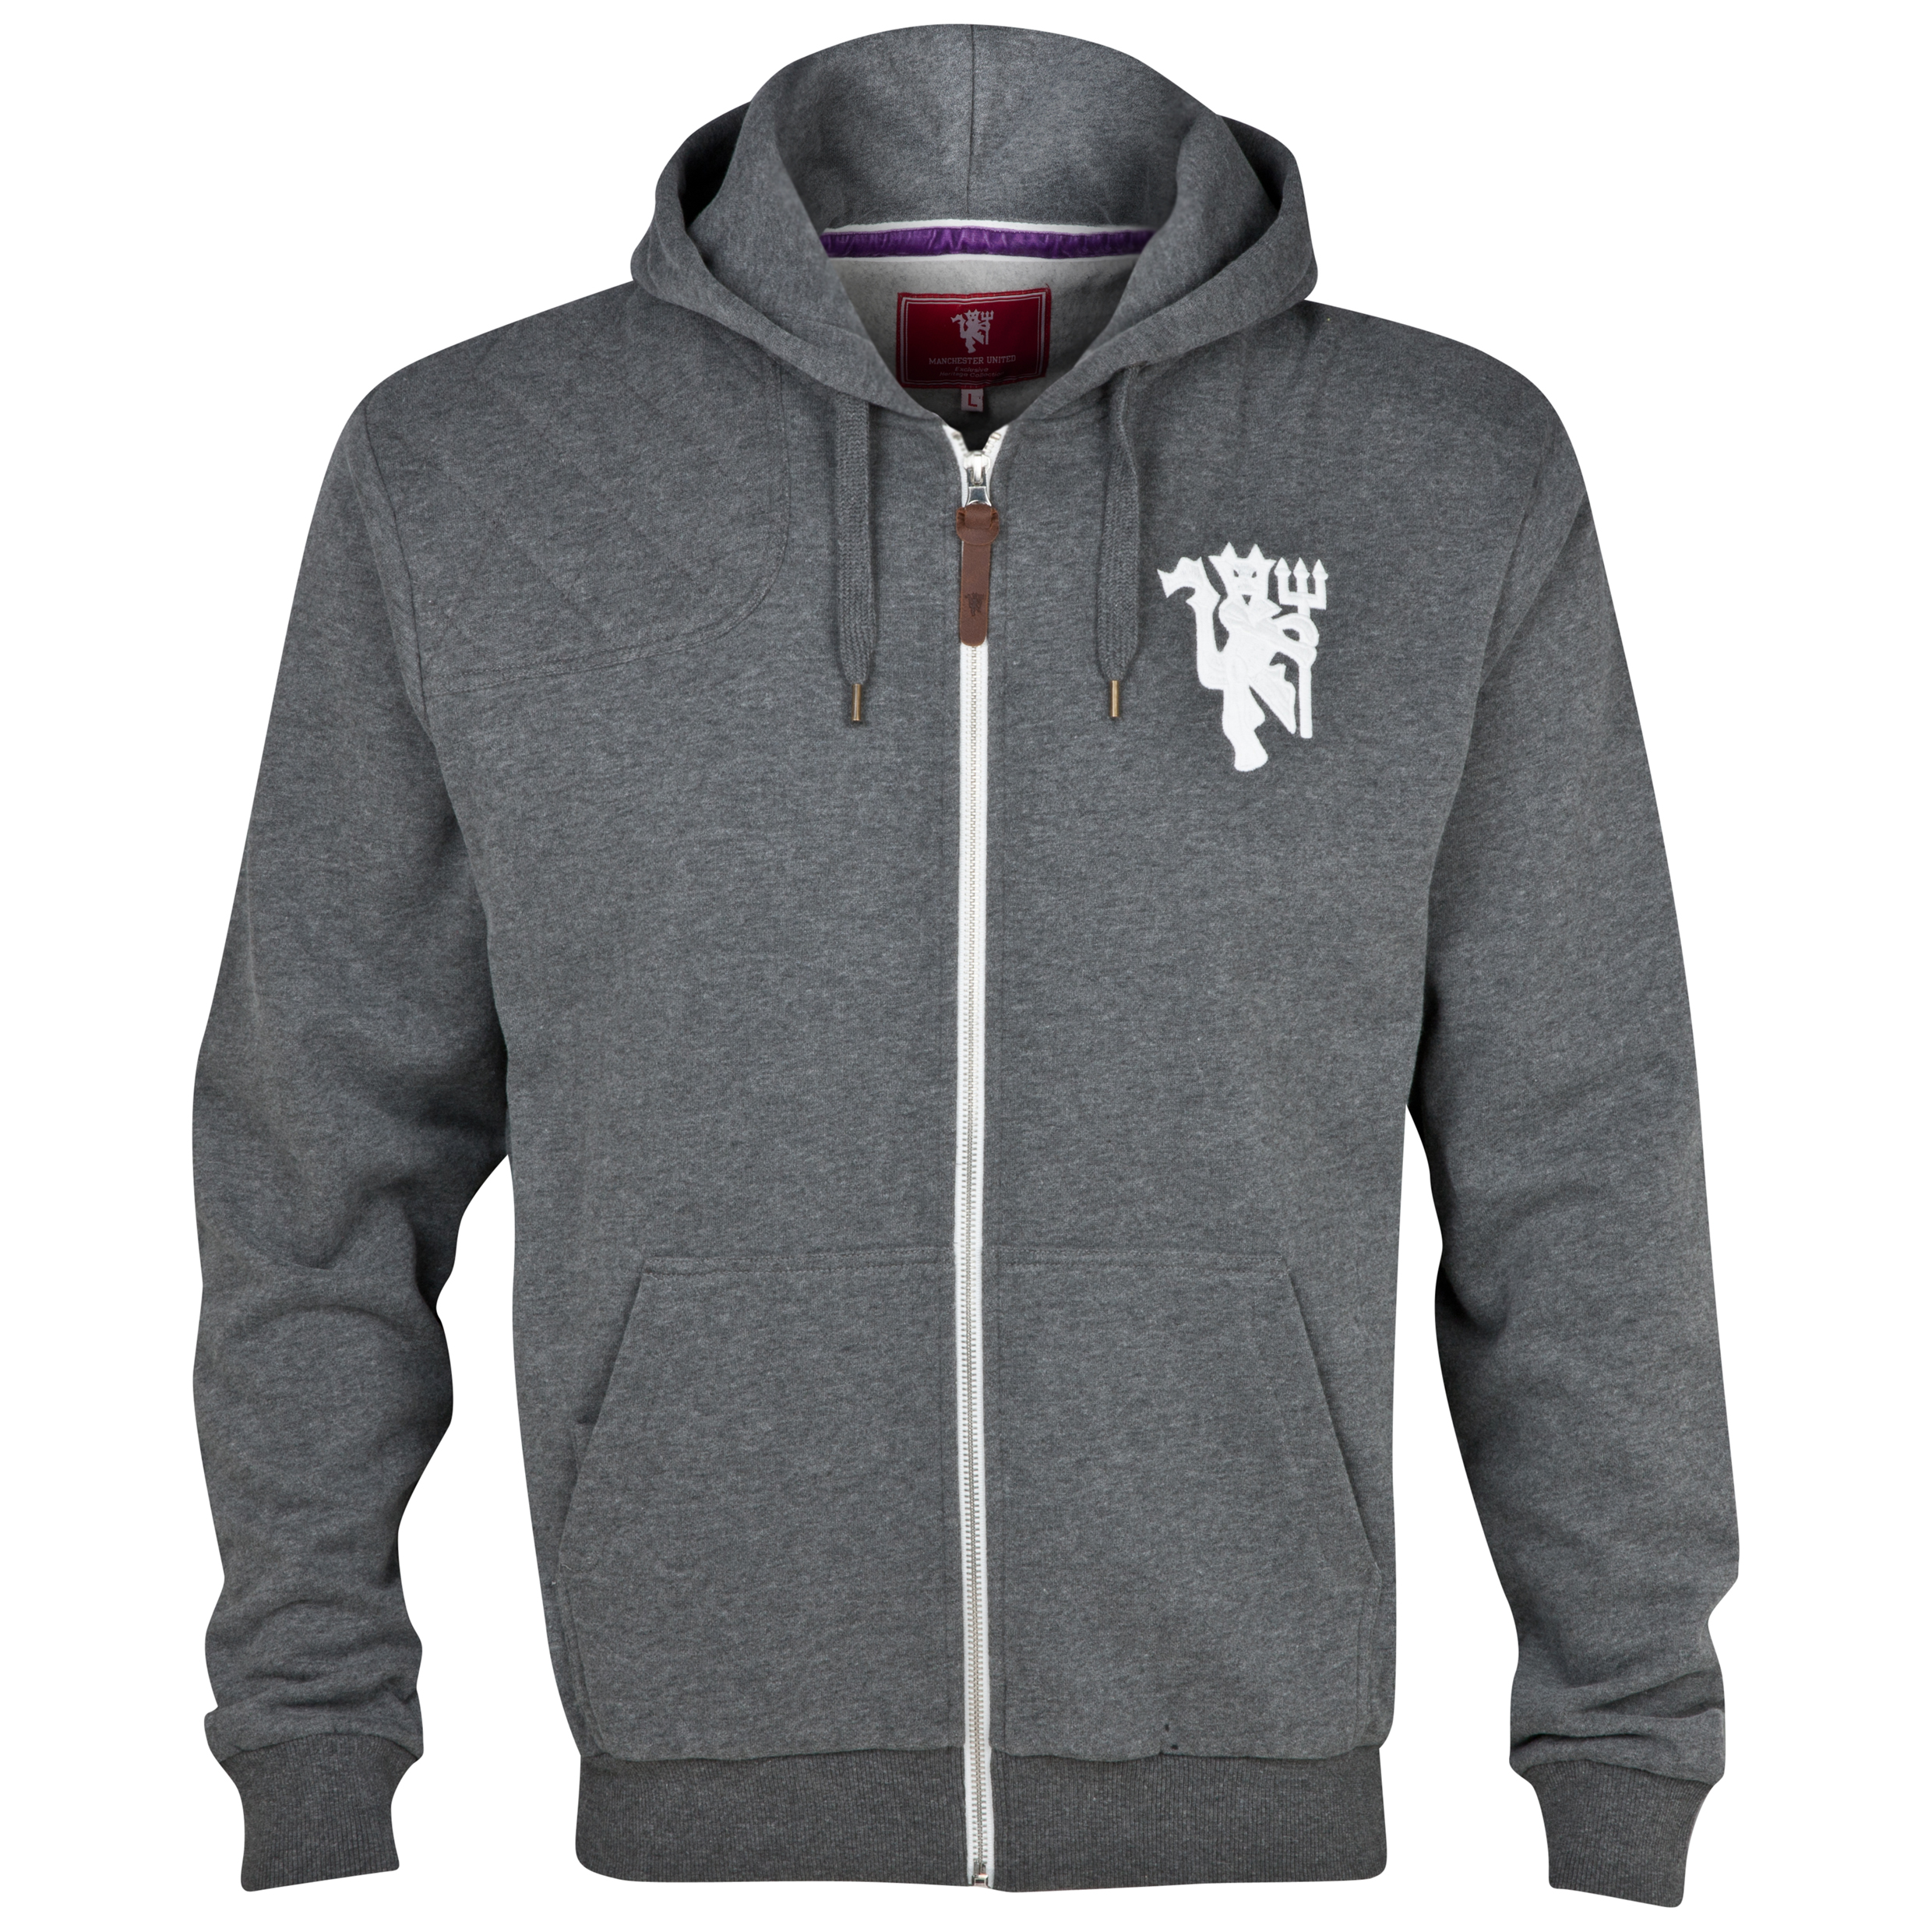 Manchester United Quilted Patch Hoody - Mens Charcoal